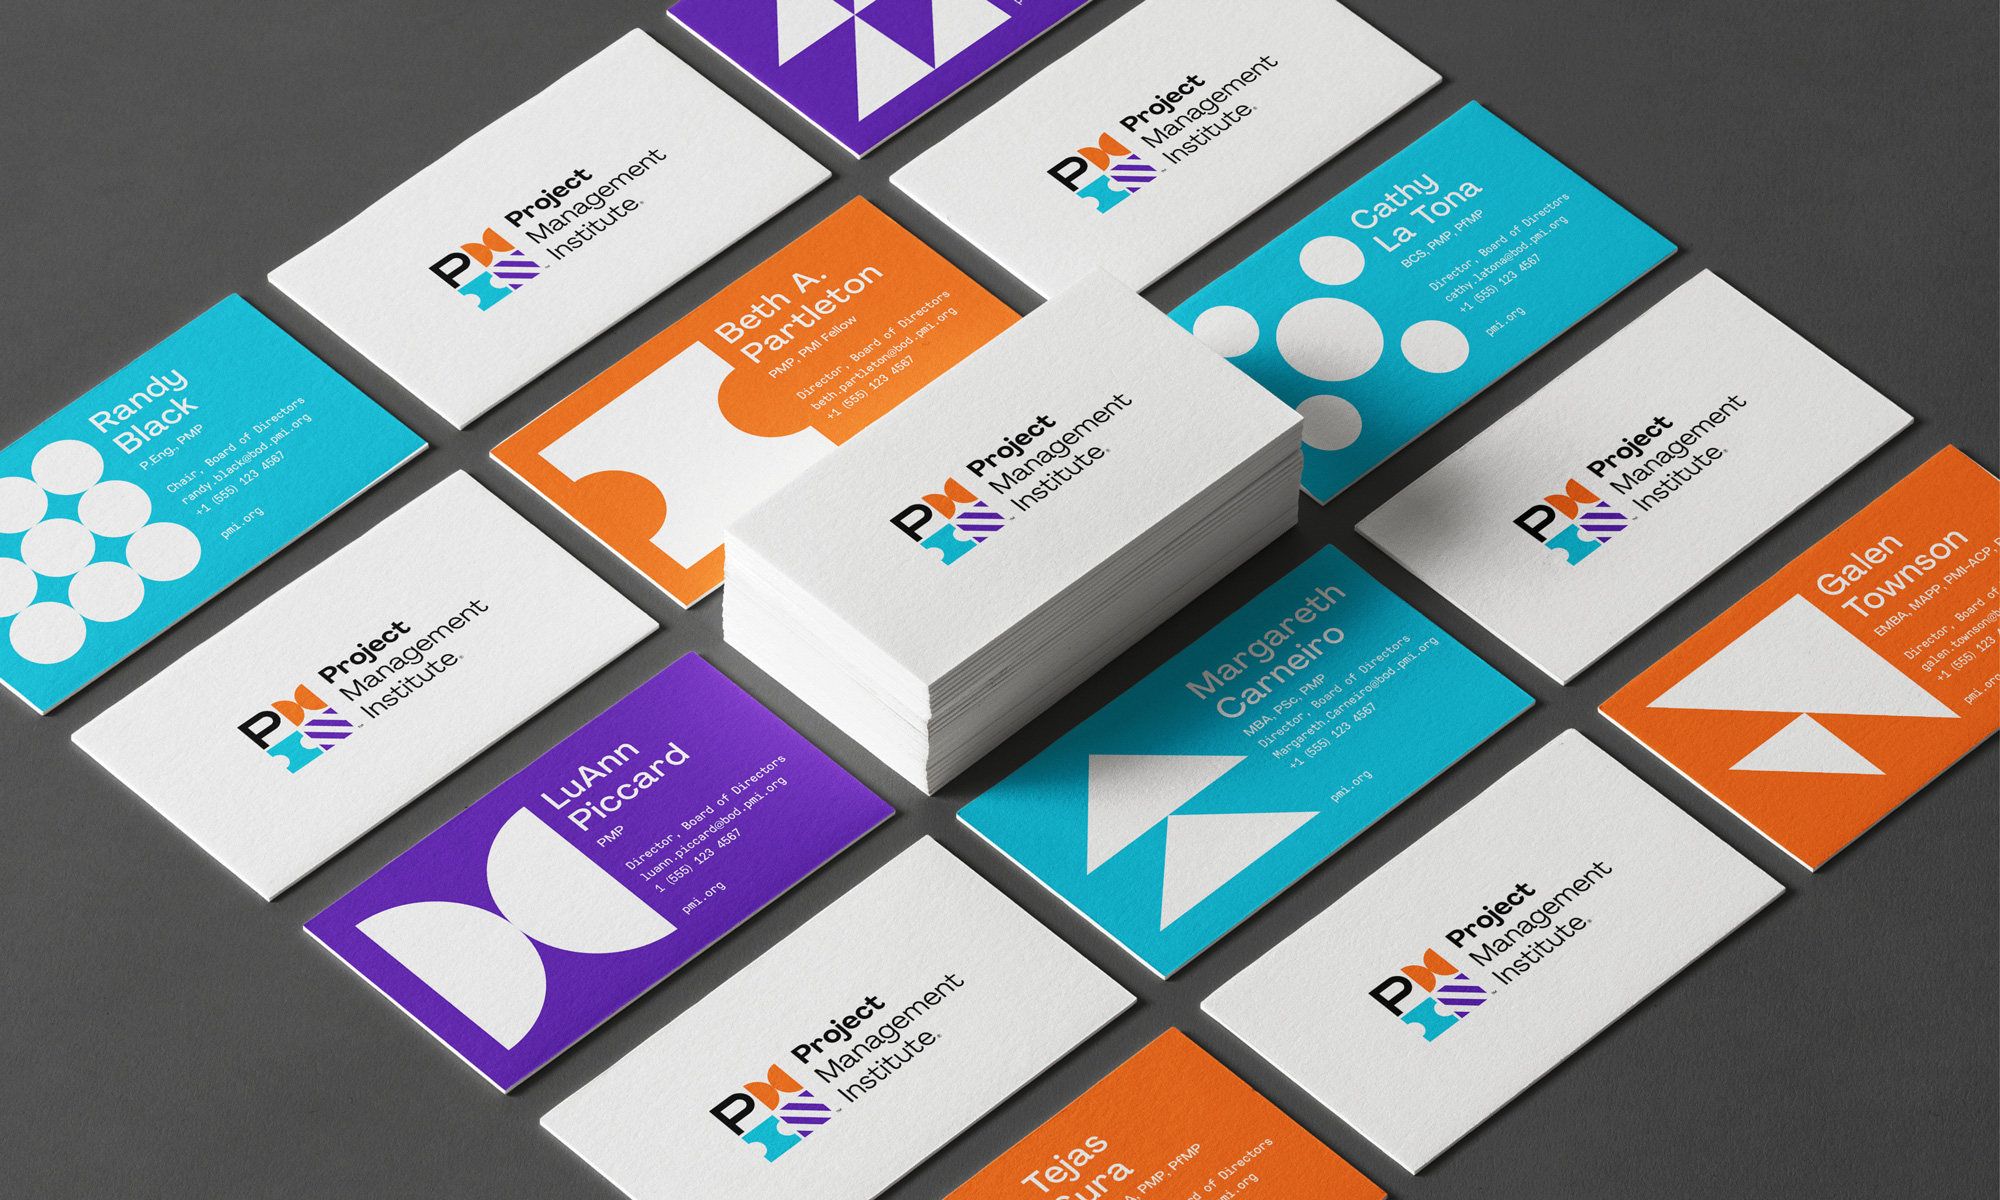 New Logo and Identity for Project Management Institute by Superunion